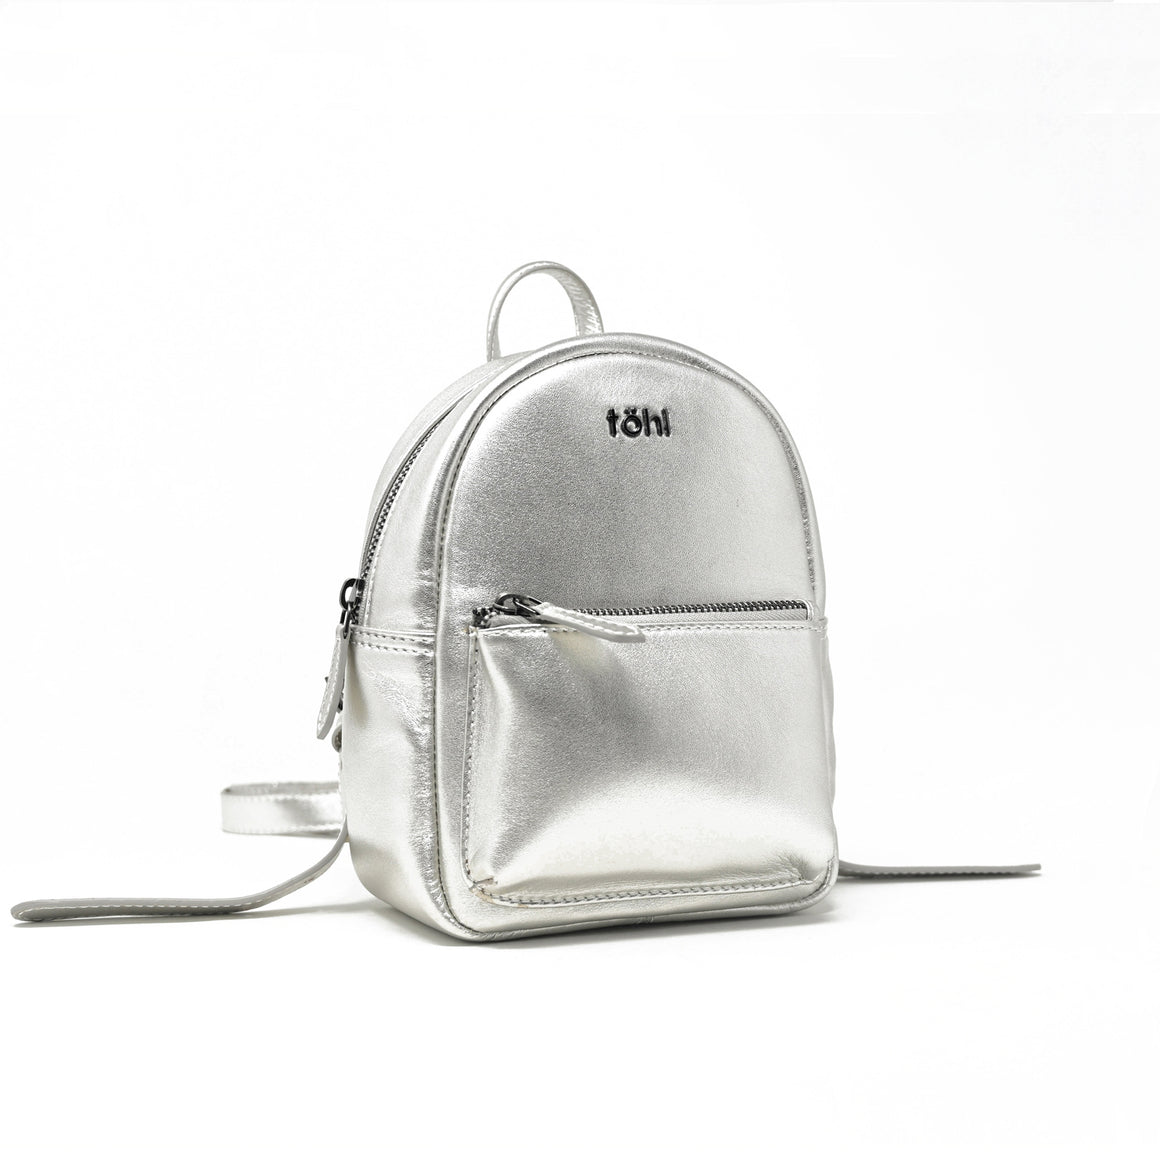 BP0017 - TOHL NEVERN WOMEN'S BACKPACK - SILVER